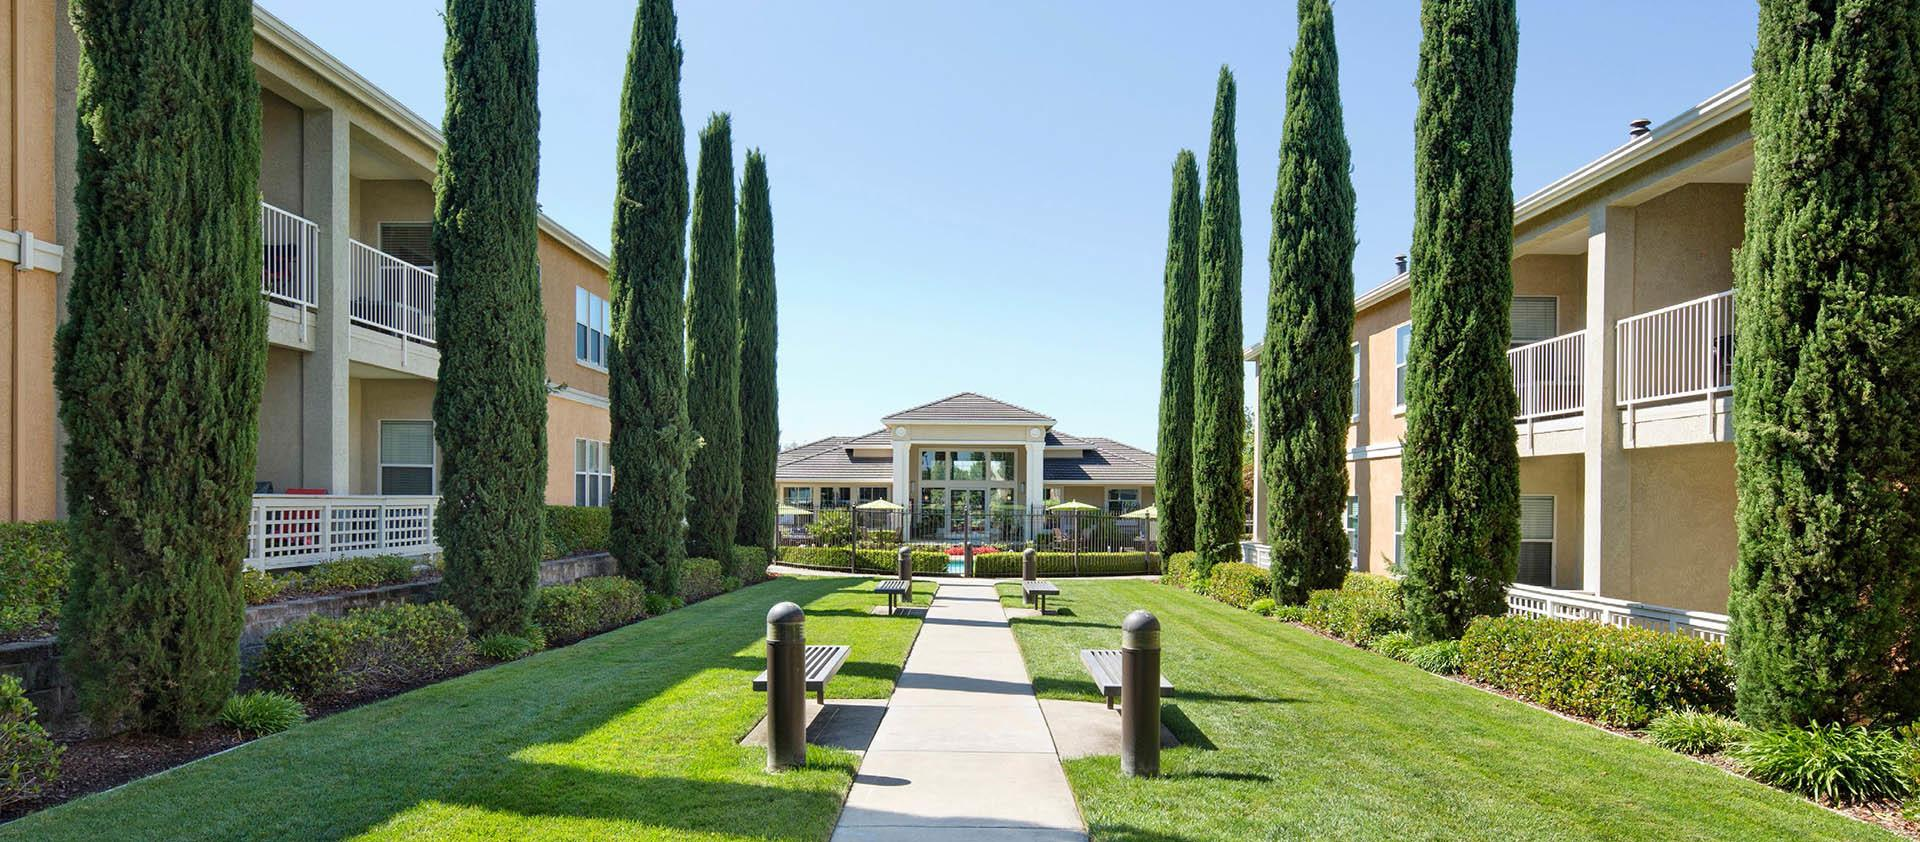 Landscaped Courtyard at Iron Point at Prairie Oaks in Folsom, California